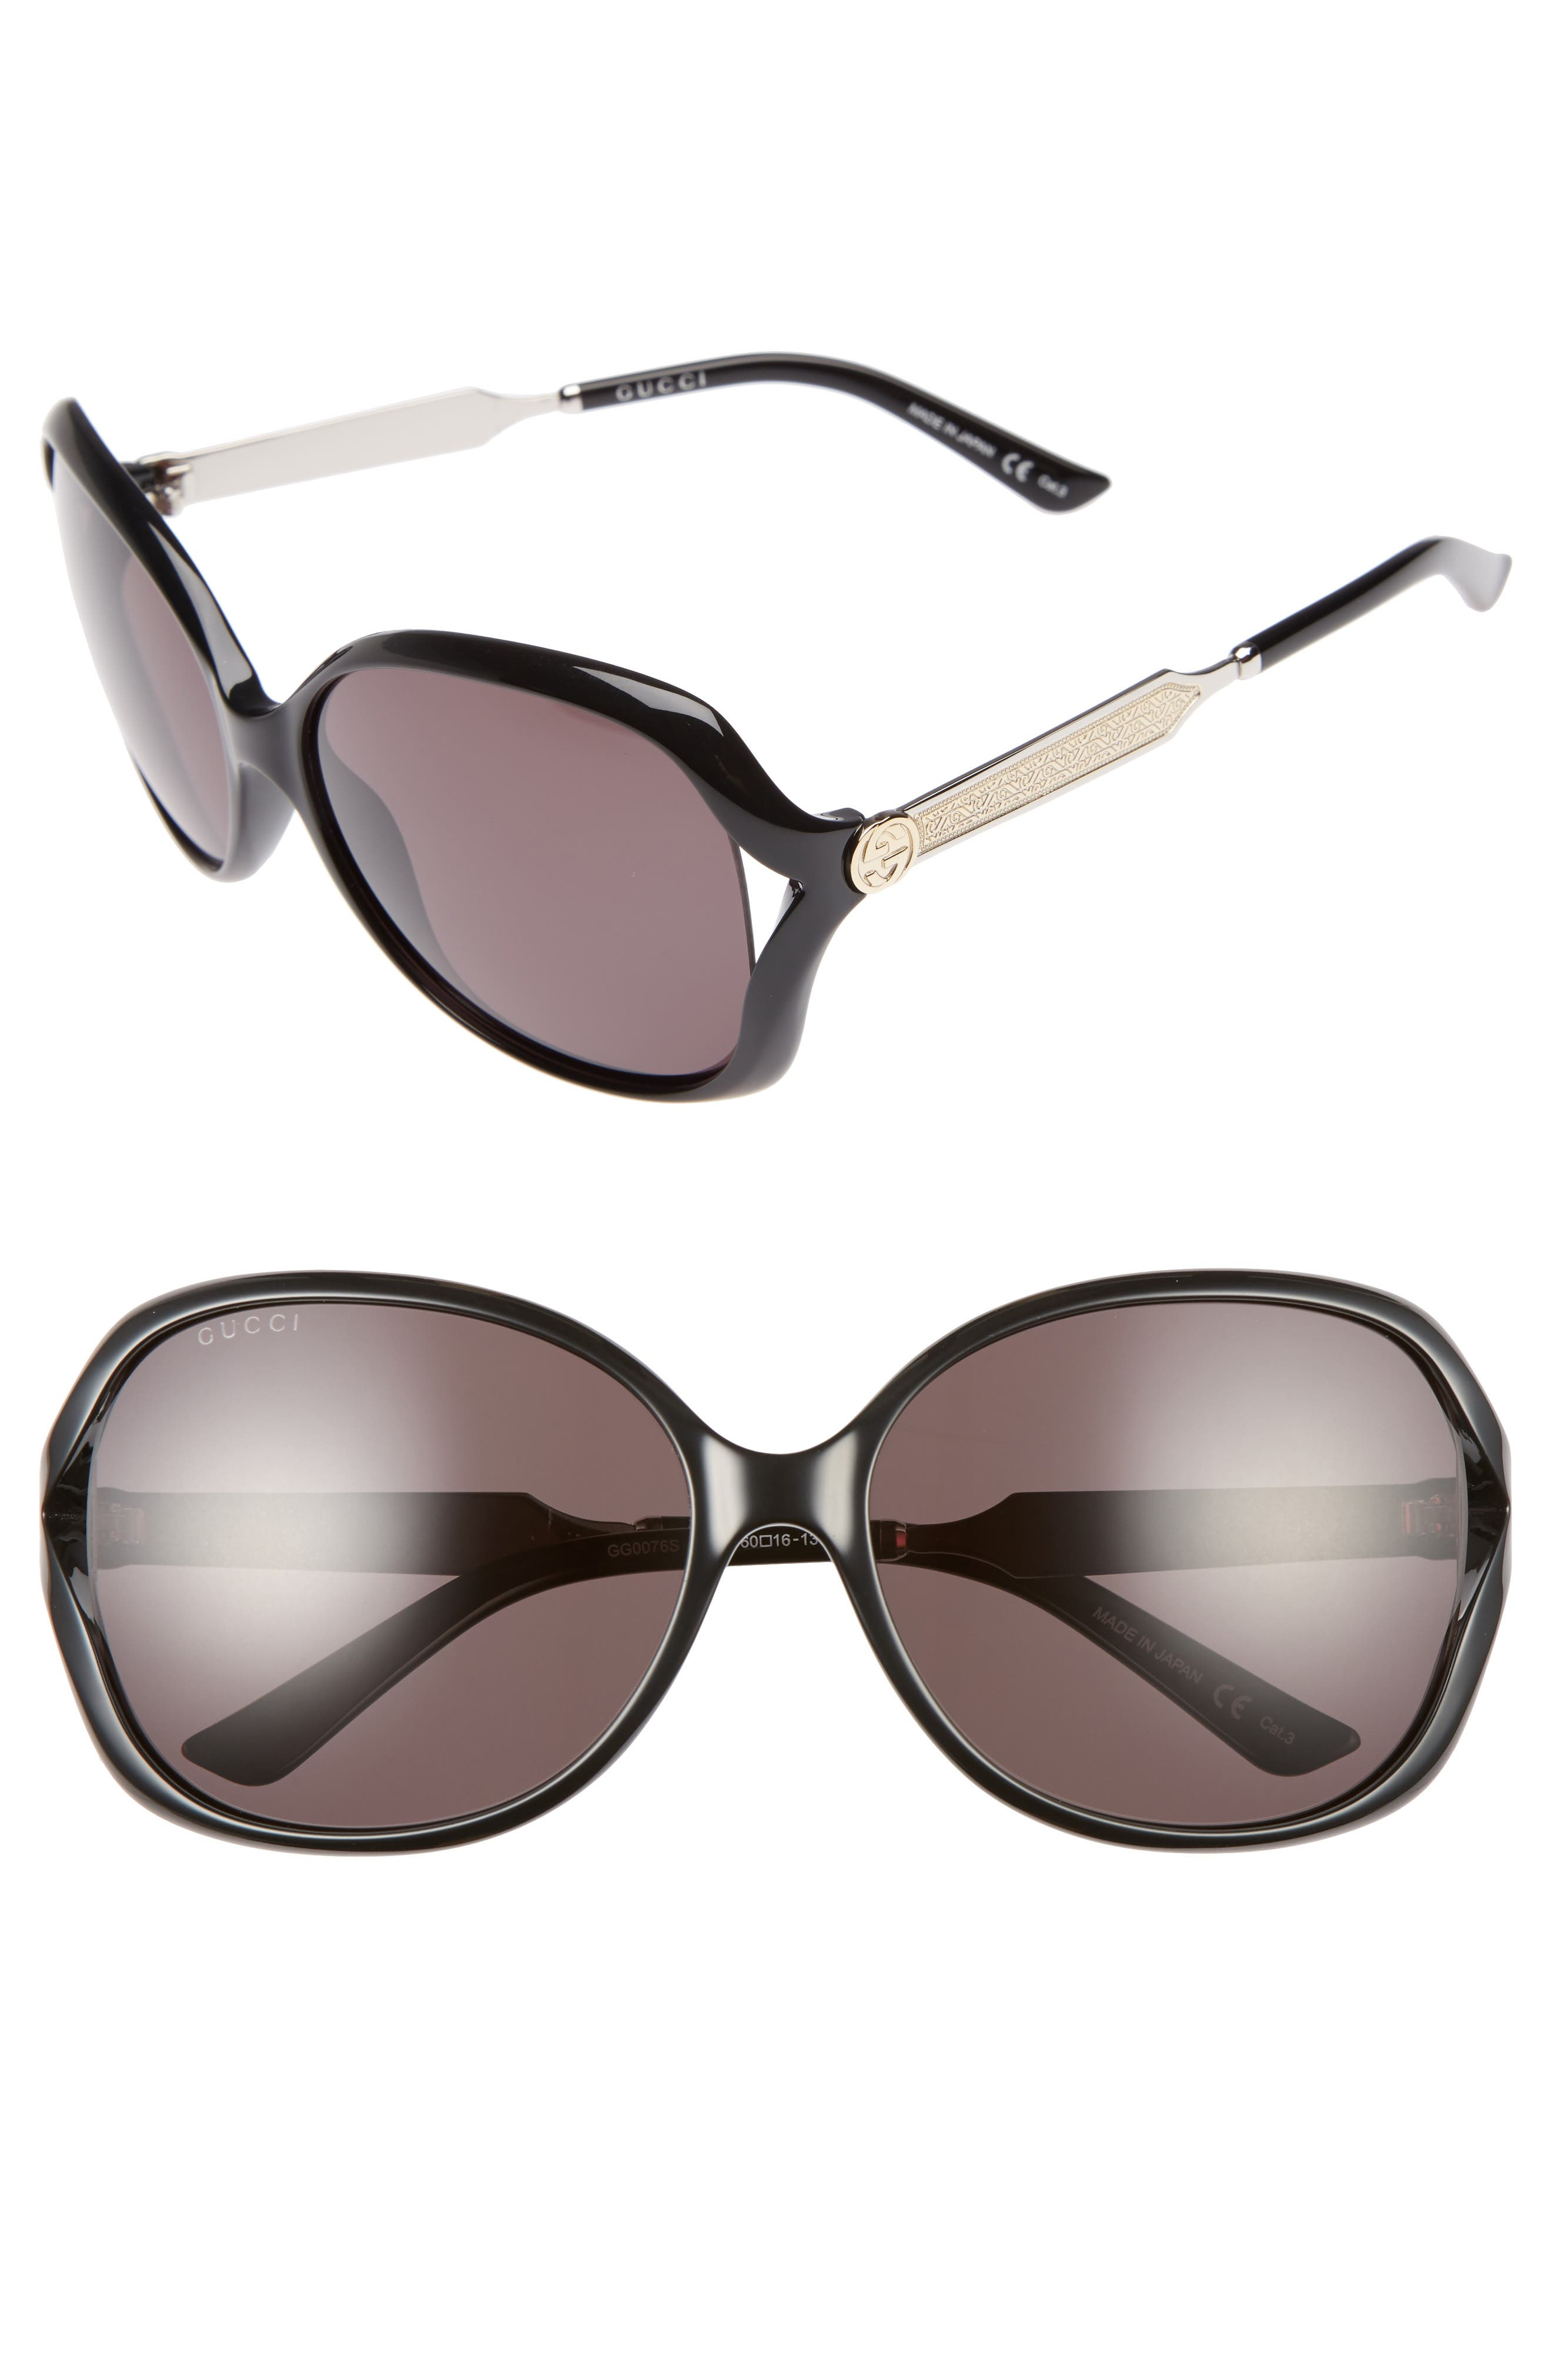 60mm Open Temple Oval Sunglasses,                         Main,                         color, BLACK/ GREY